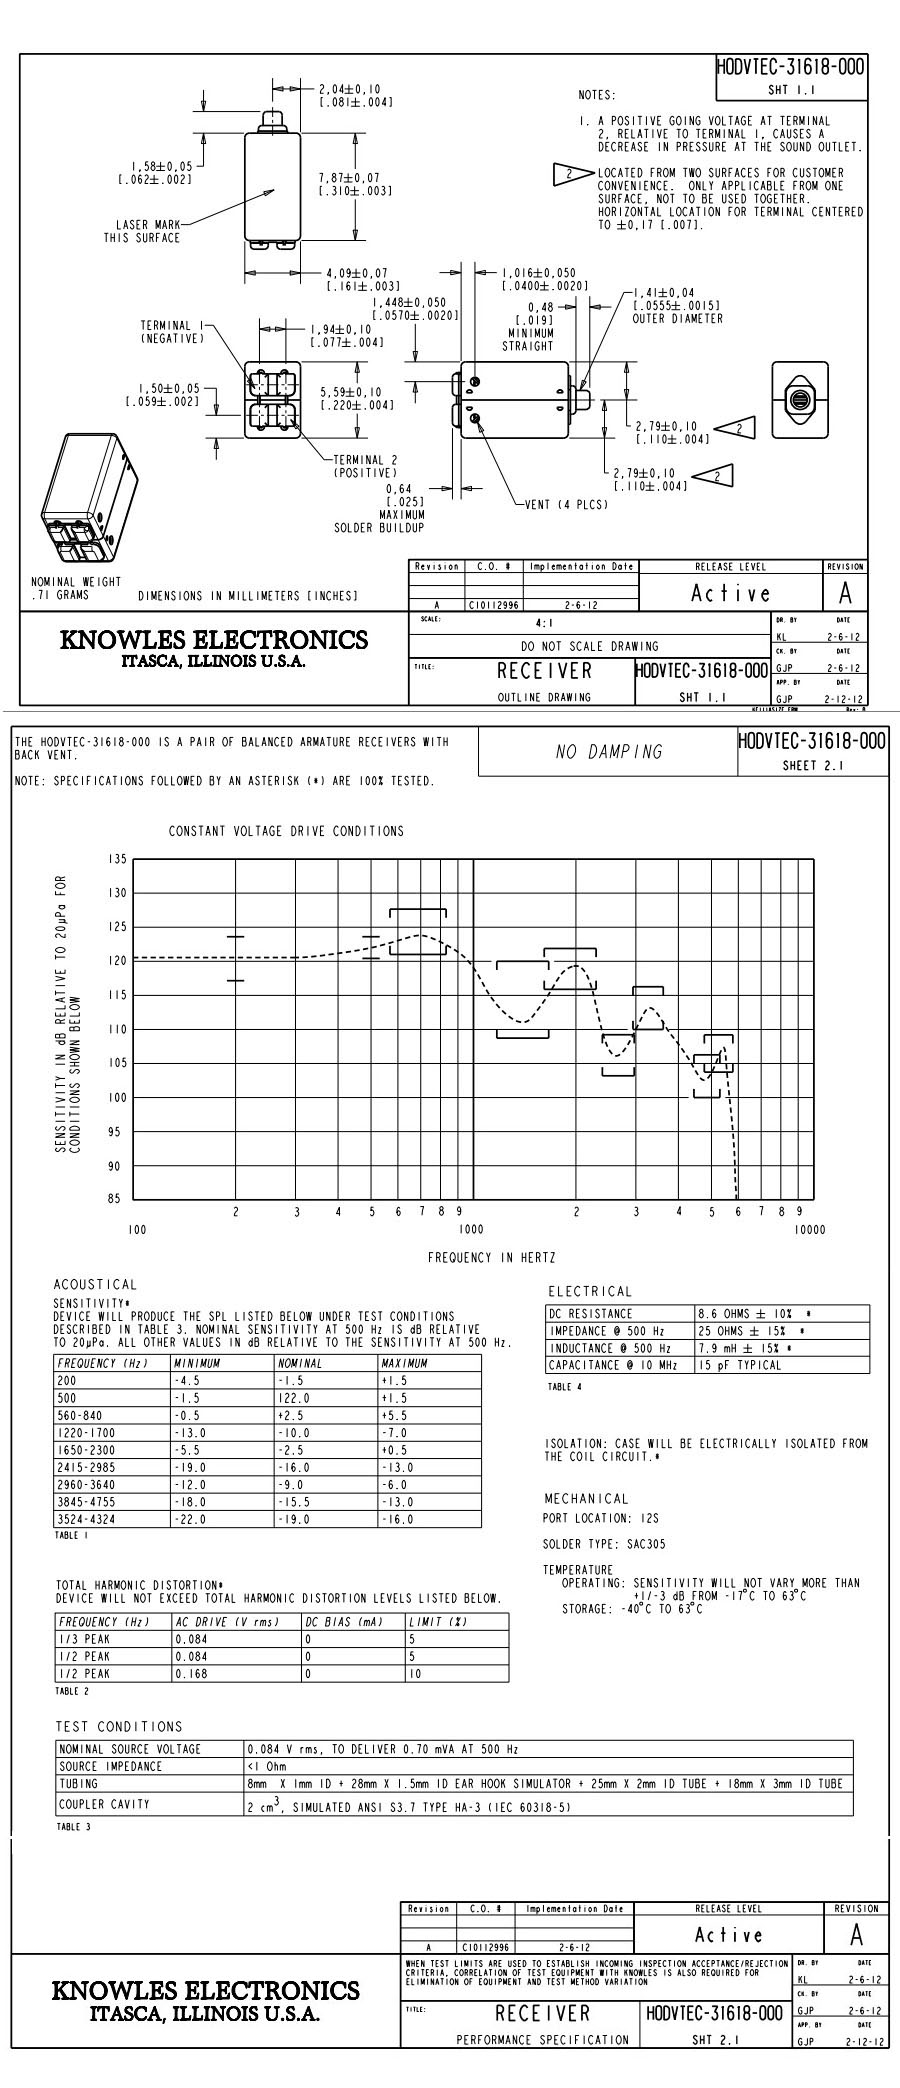 HODVTEC-31618 Knowles receiver and speaker